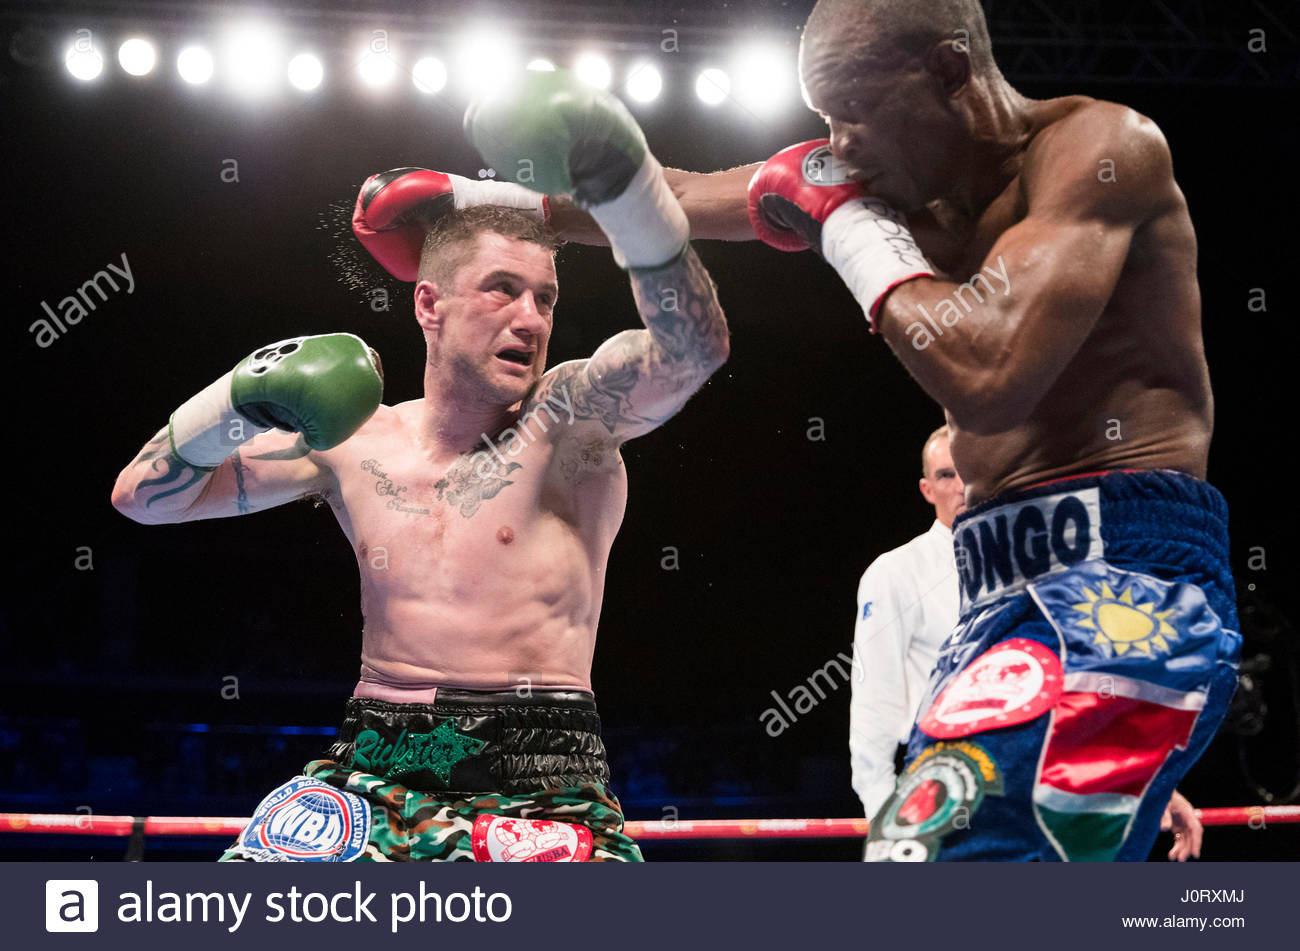 Russian boxer Troyanovsky defended his IBO and IBF world champion titles